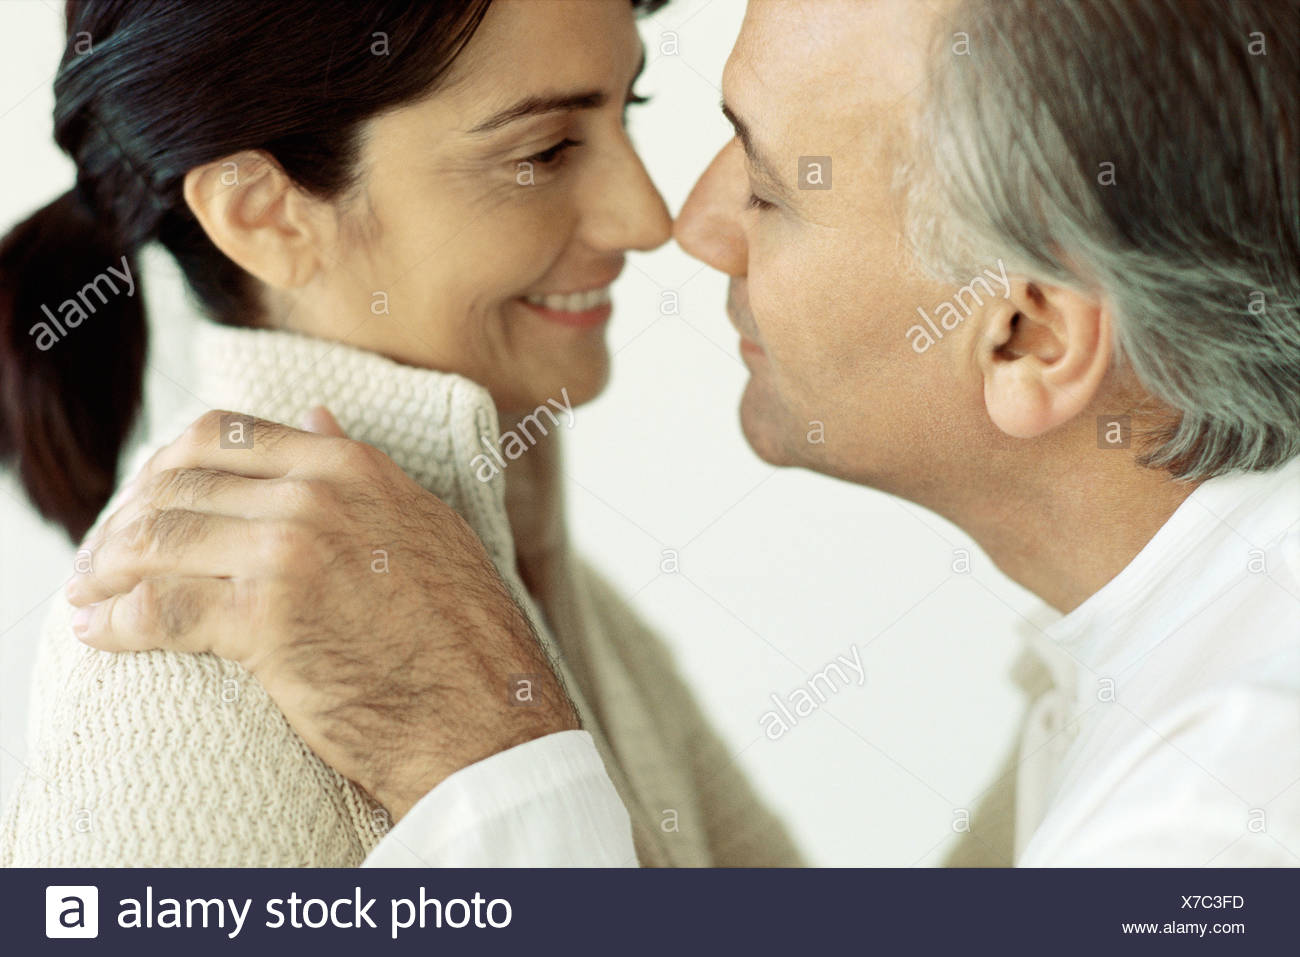 Mature couple rubbing noses - Stock Image